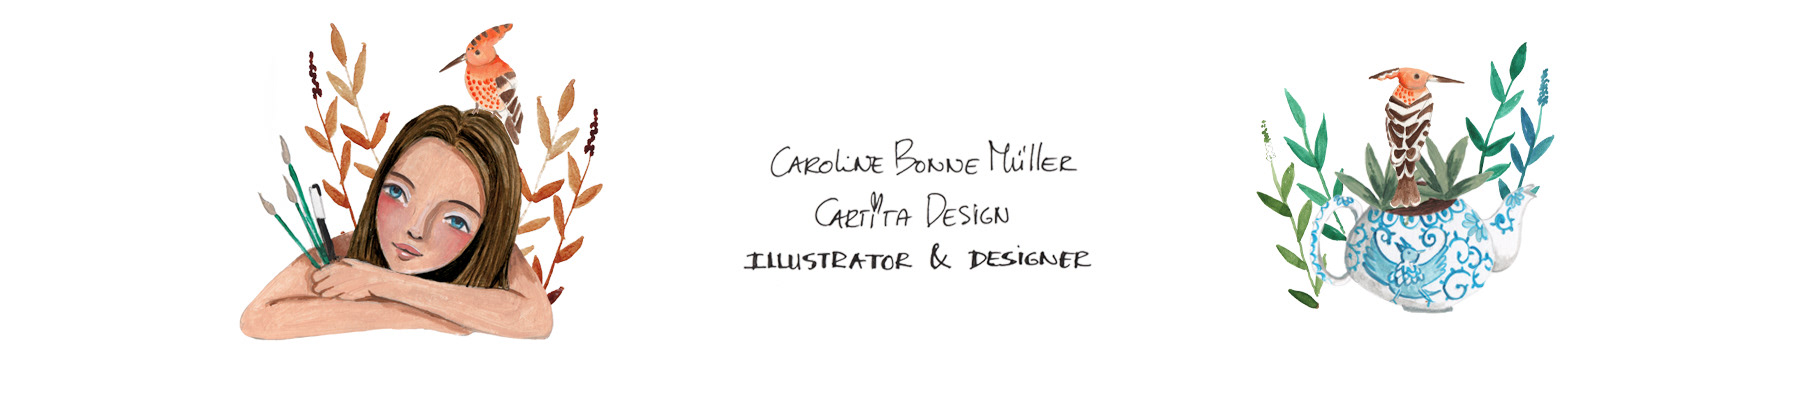 Cartita Design